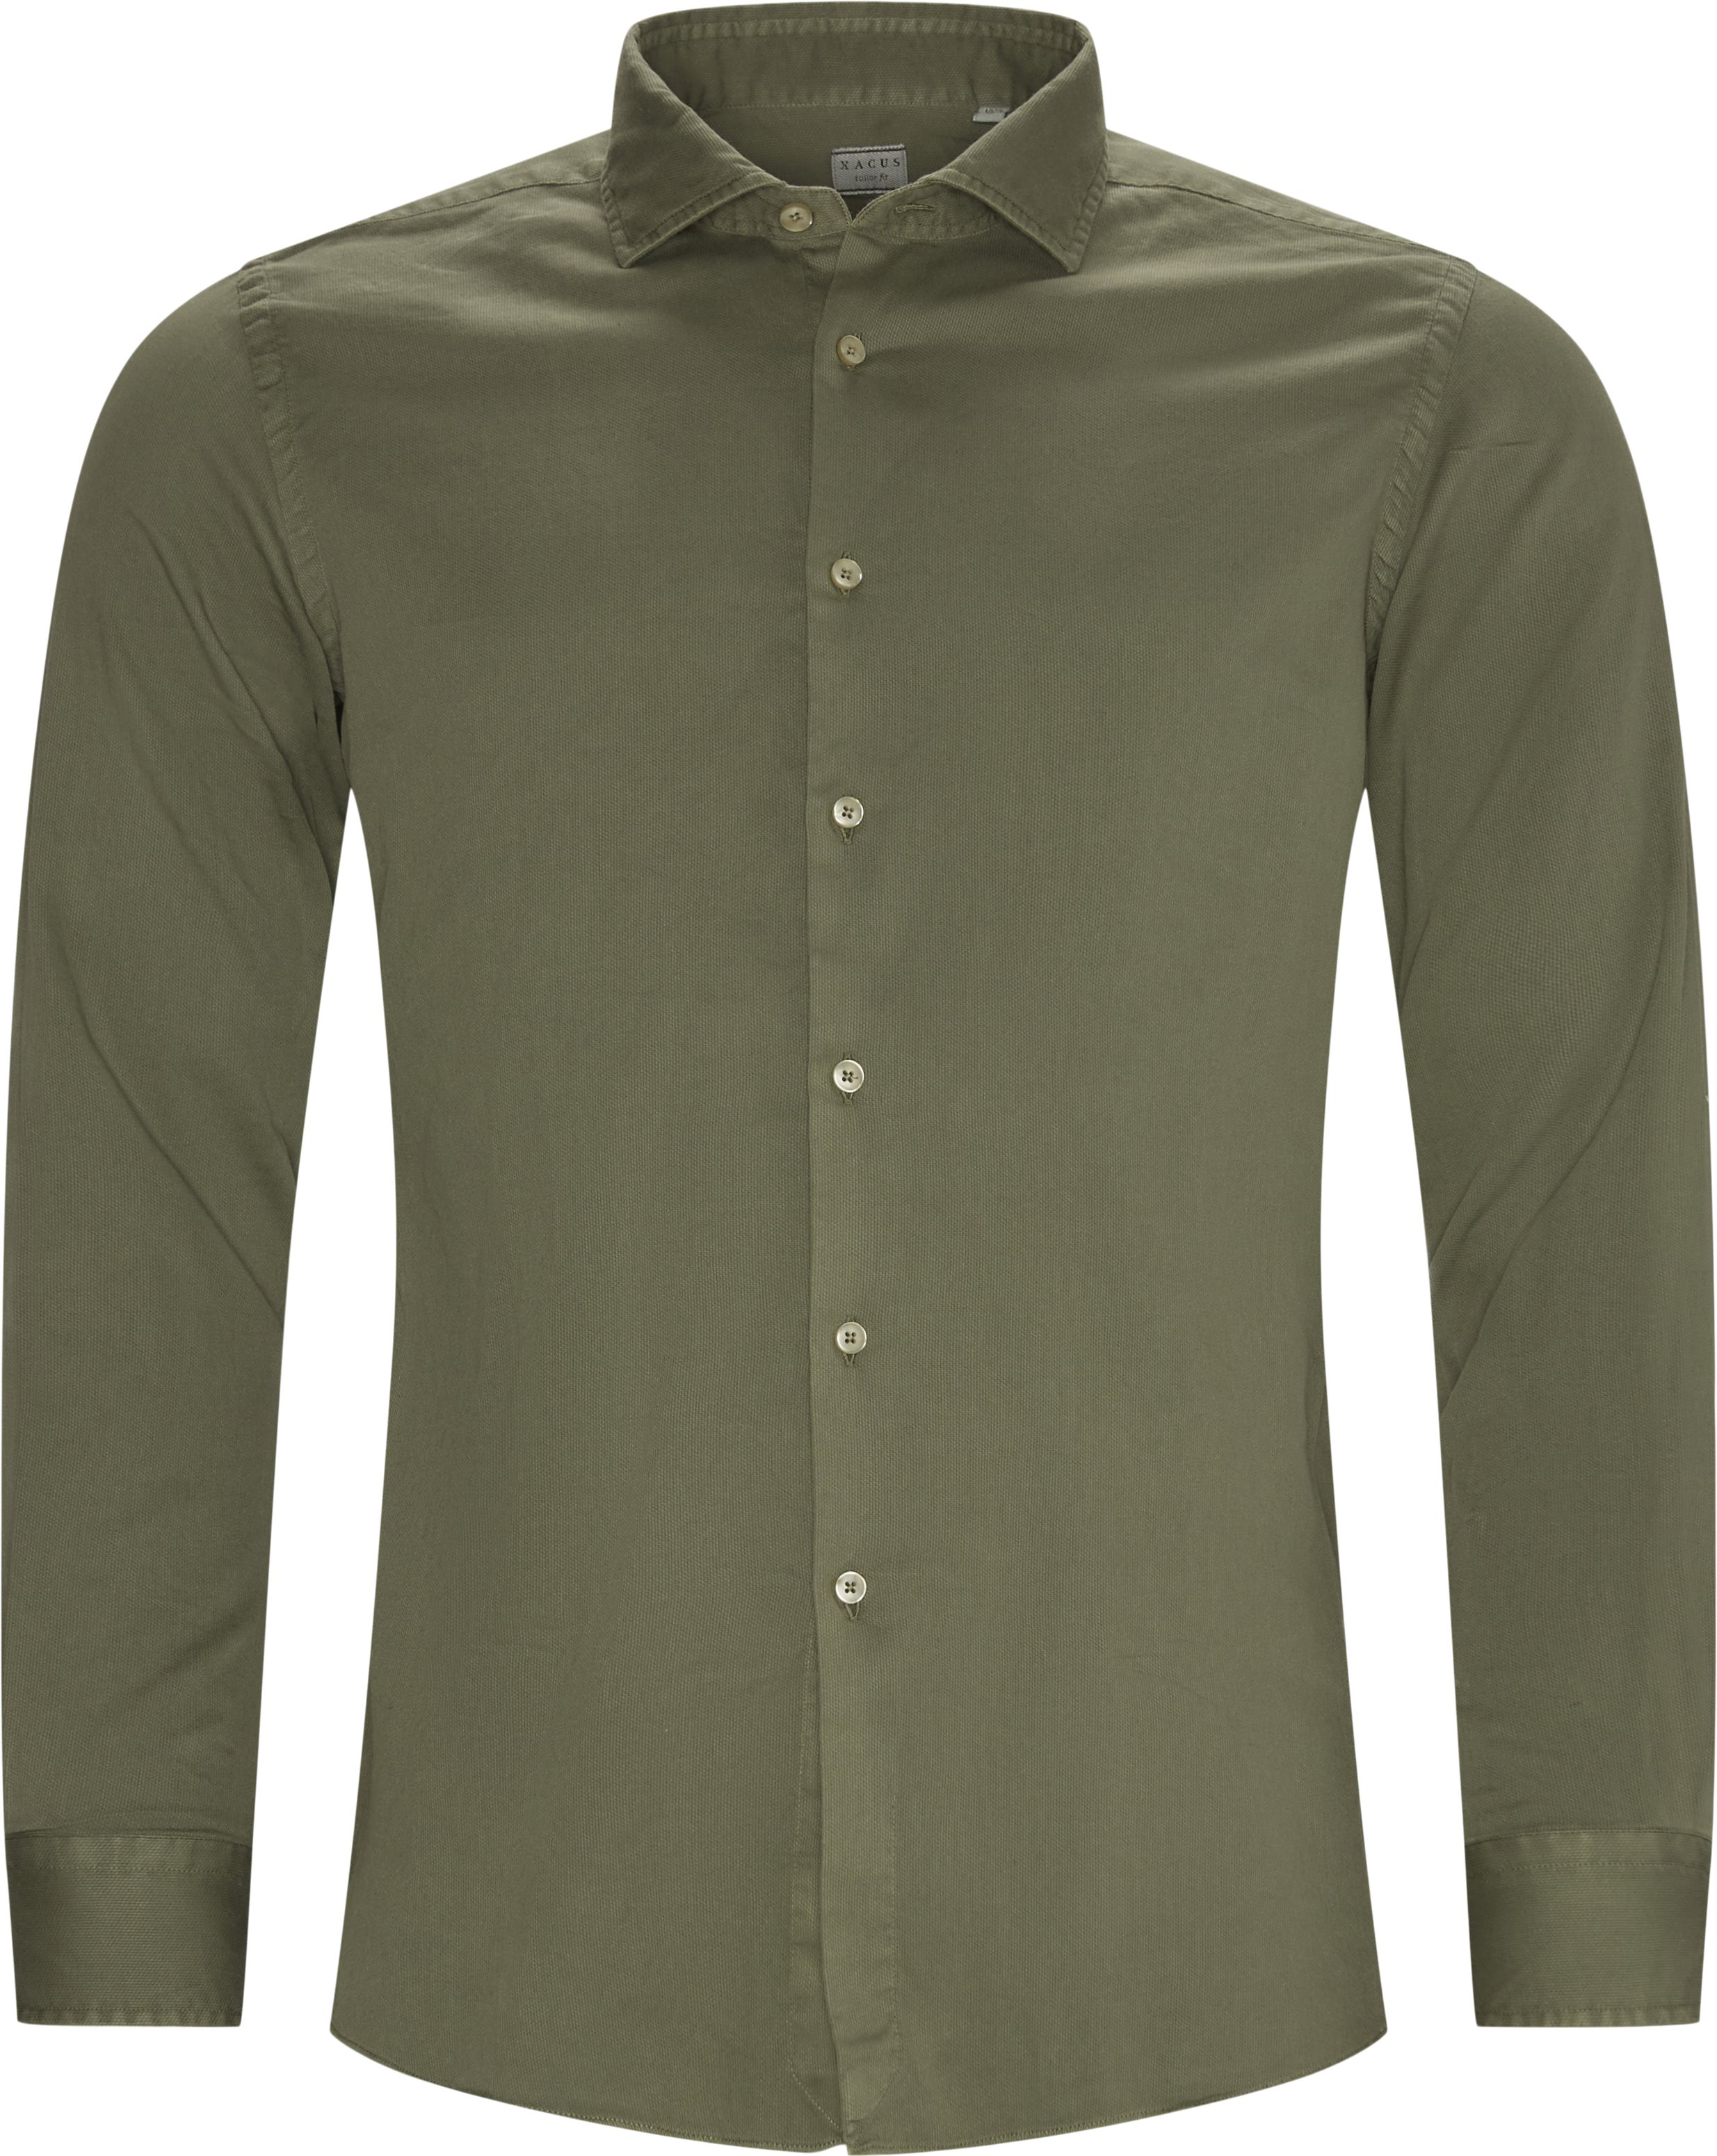 Skjorter - Tailored fit - Army